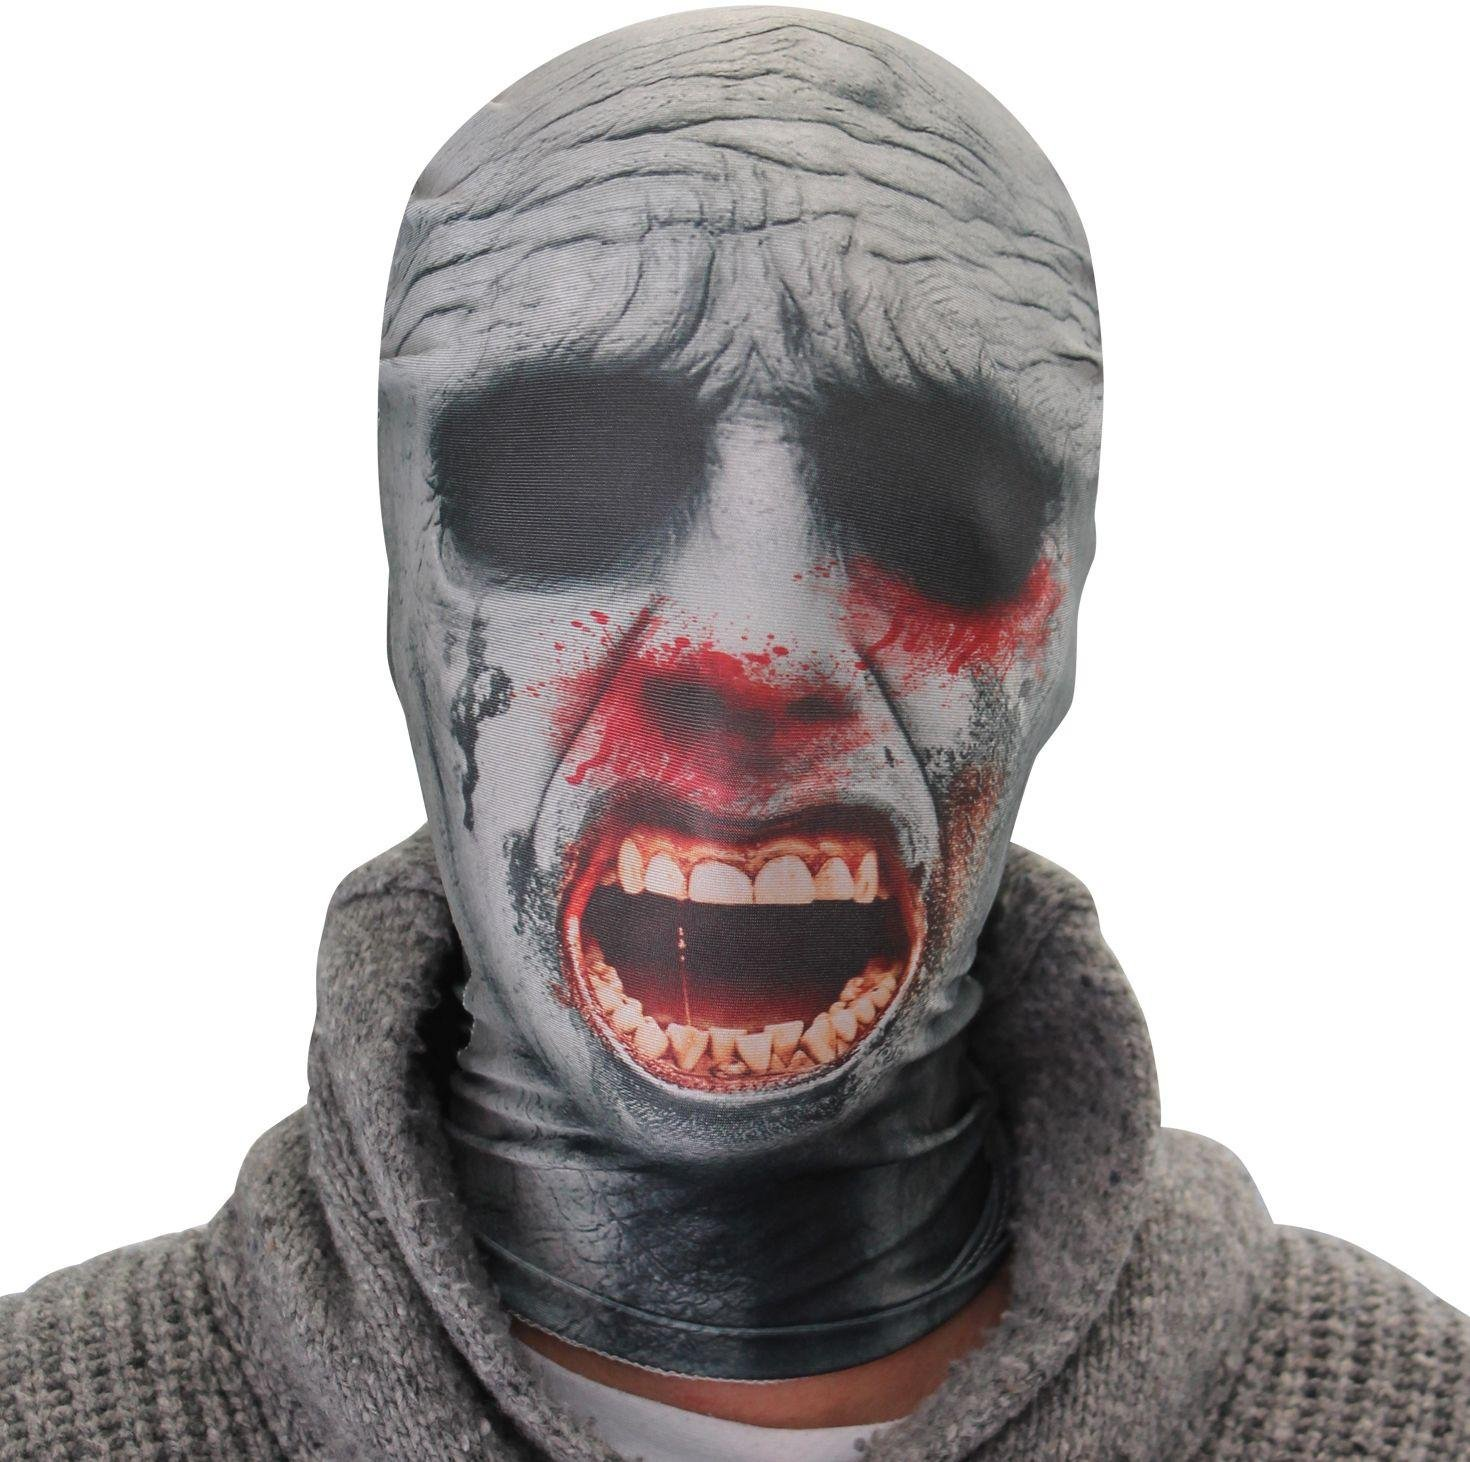 Image of Zombie Morph Masks.